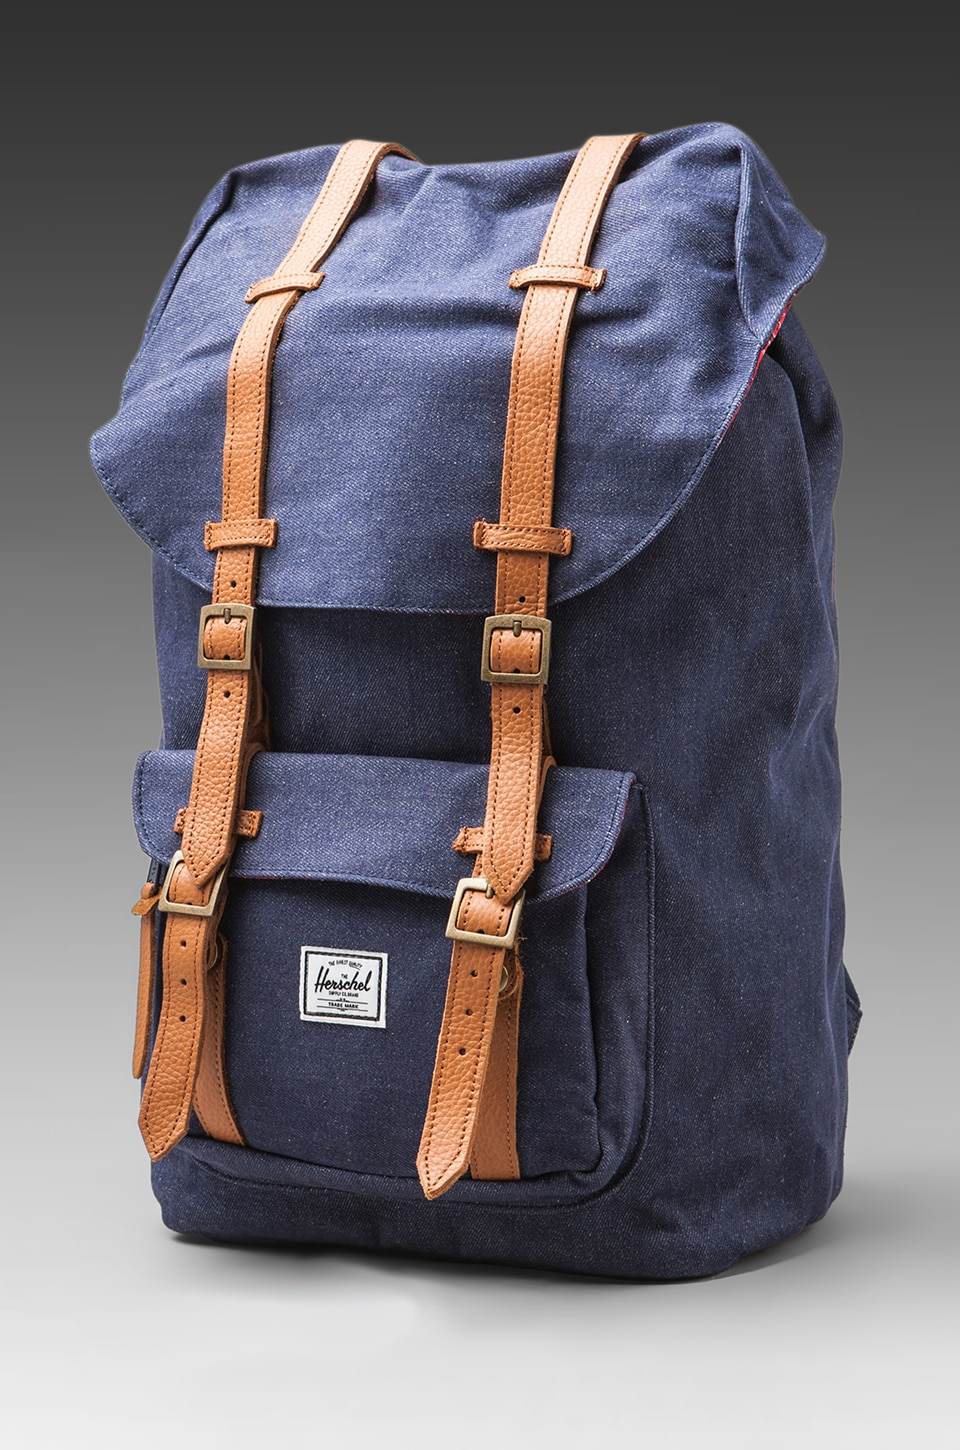 Herschel Supply Co. Denim Collection Little America Backpack in Dark Denim